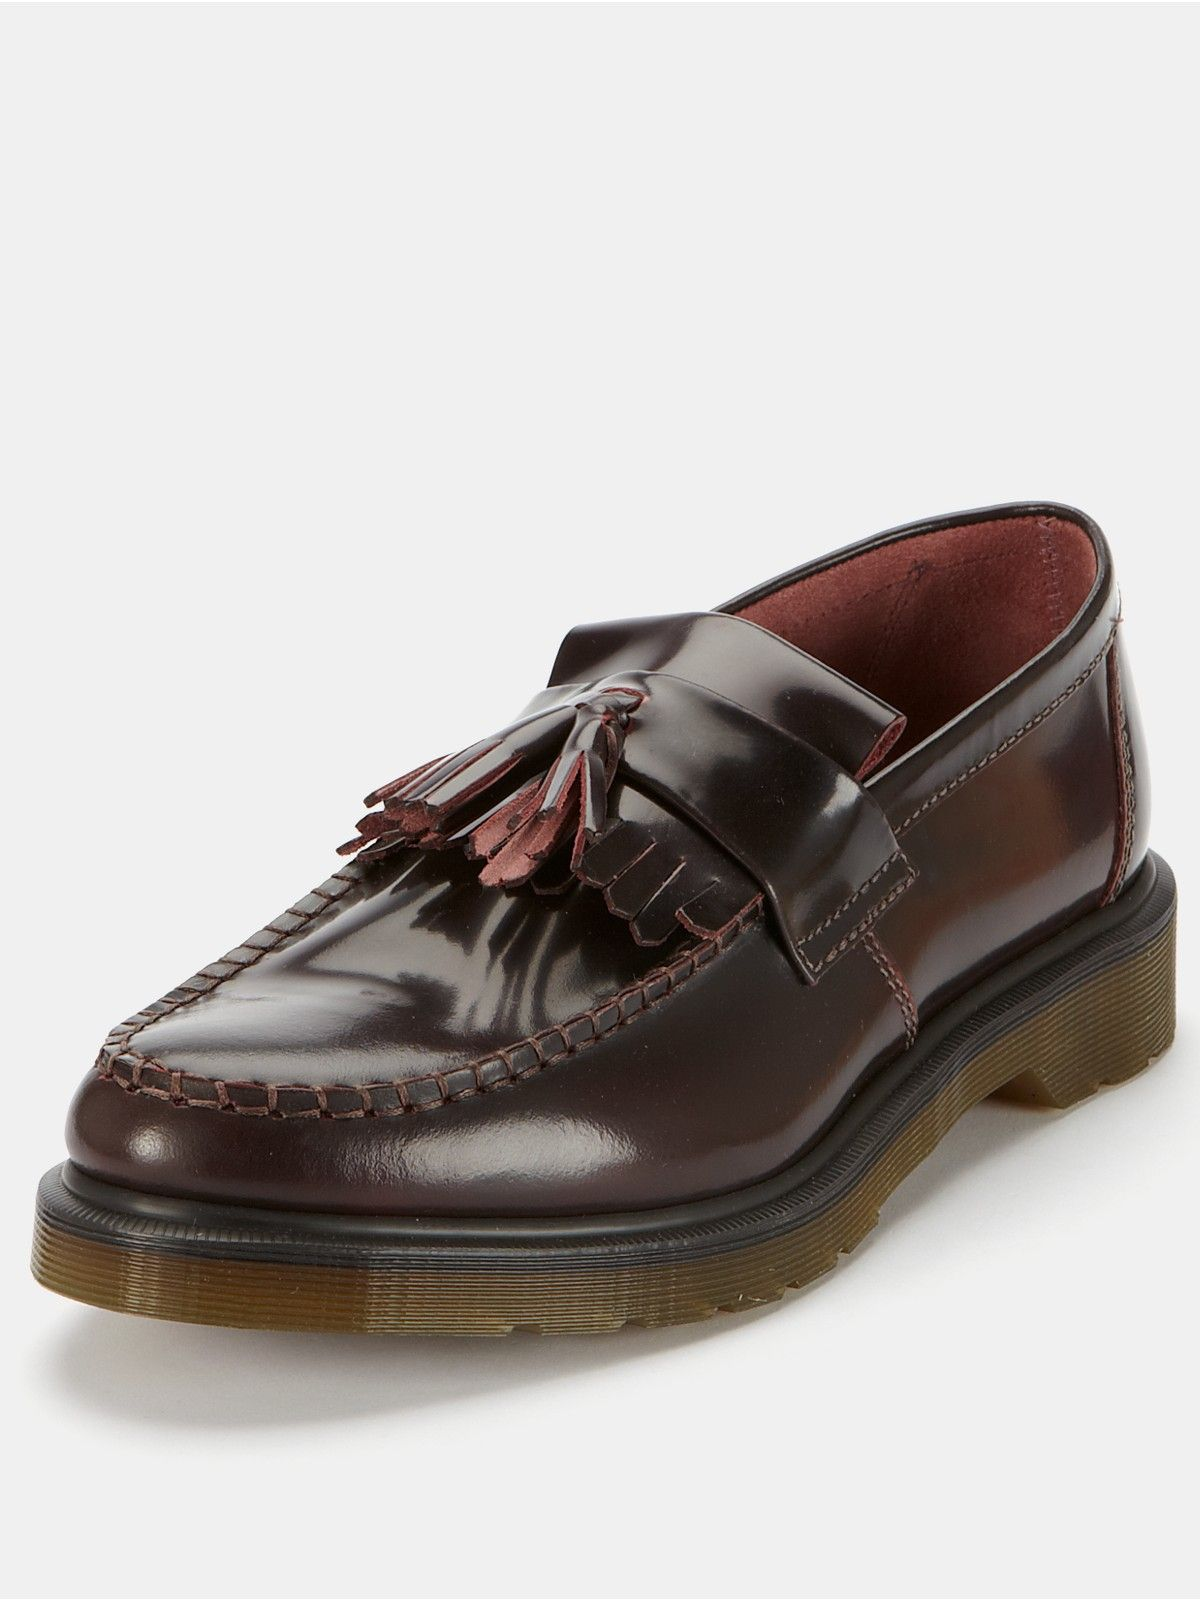 63aa06e883e35b Dr Martens Adrian Mens Tassel Loafers Very.co.uk   Products I Want ...